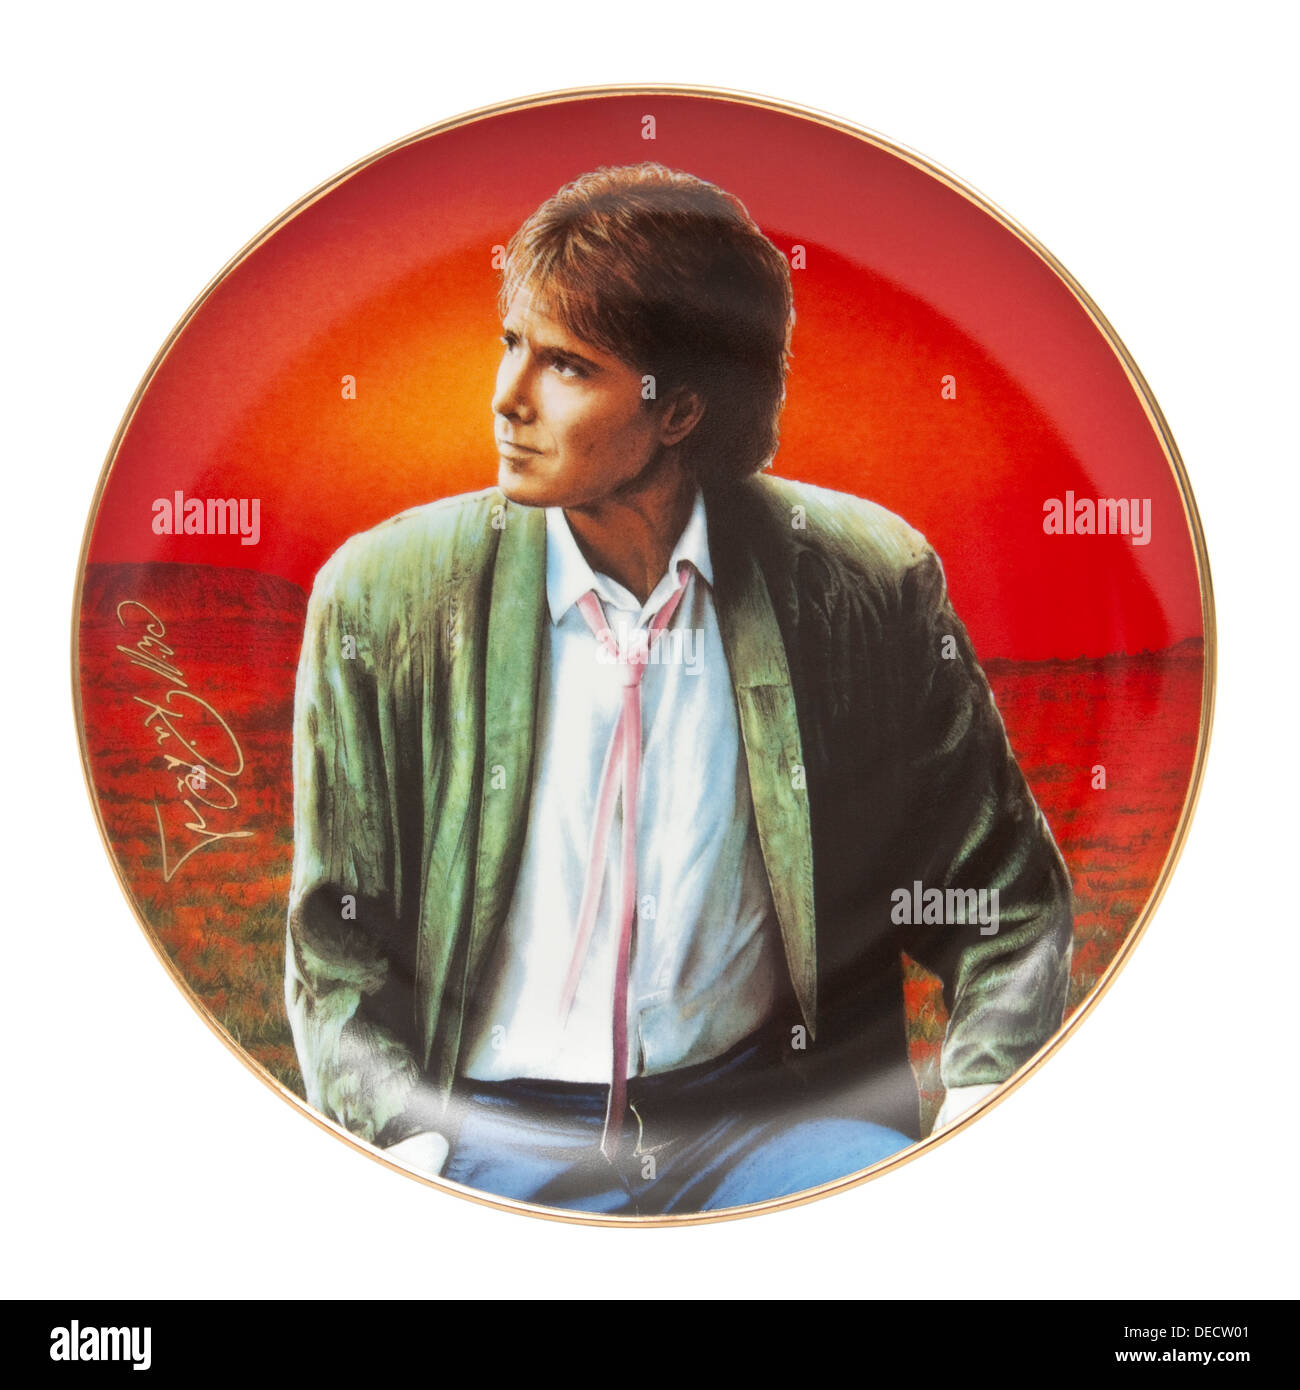 'On Reflection' from the 'Forty Glorious Years' series of 12 porcelain plates of Cliff Richard by Simon Mendez. - Stock Image